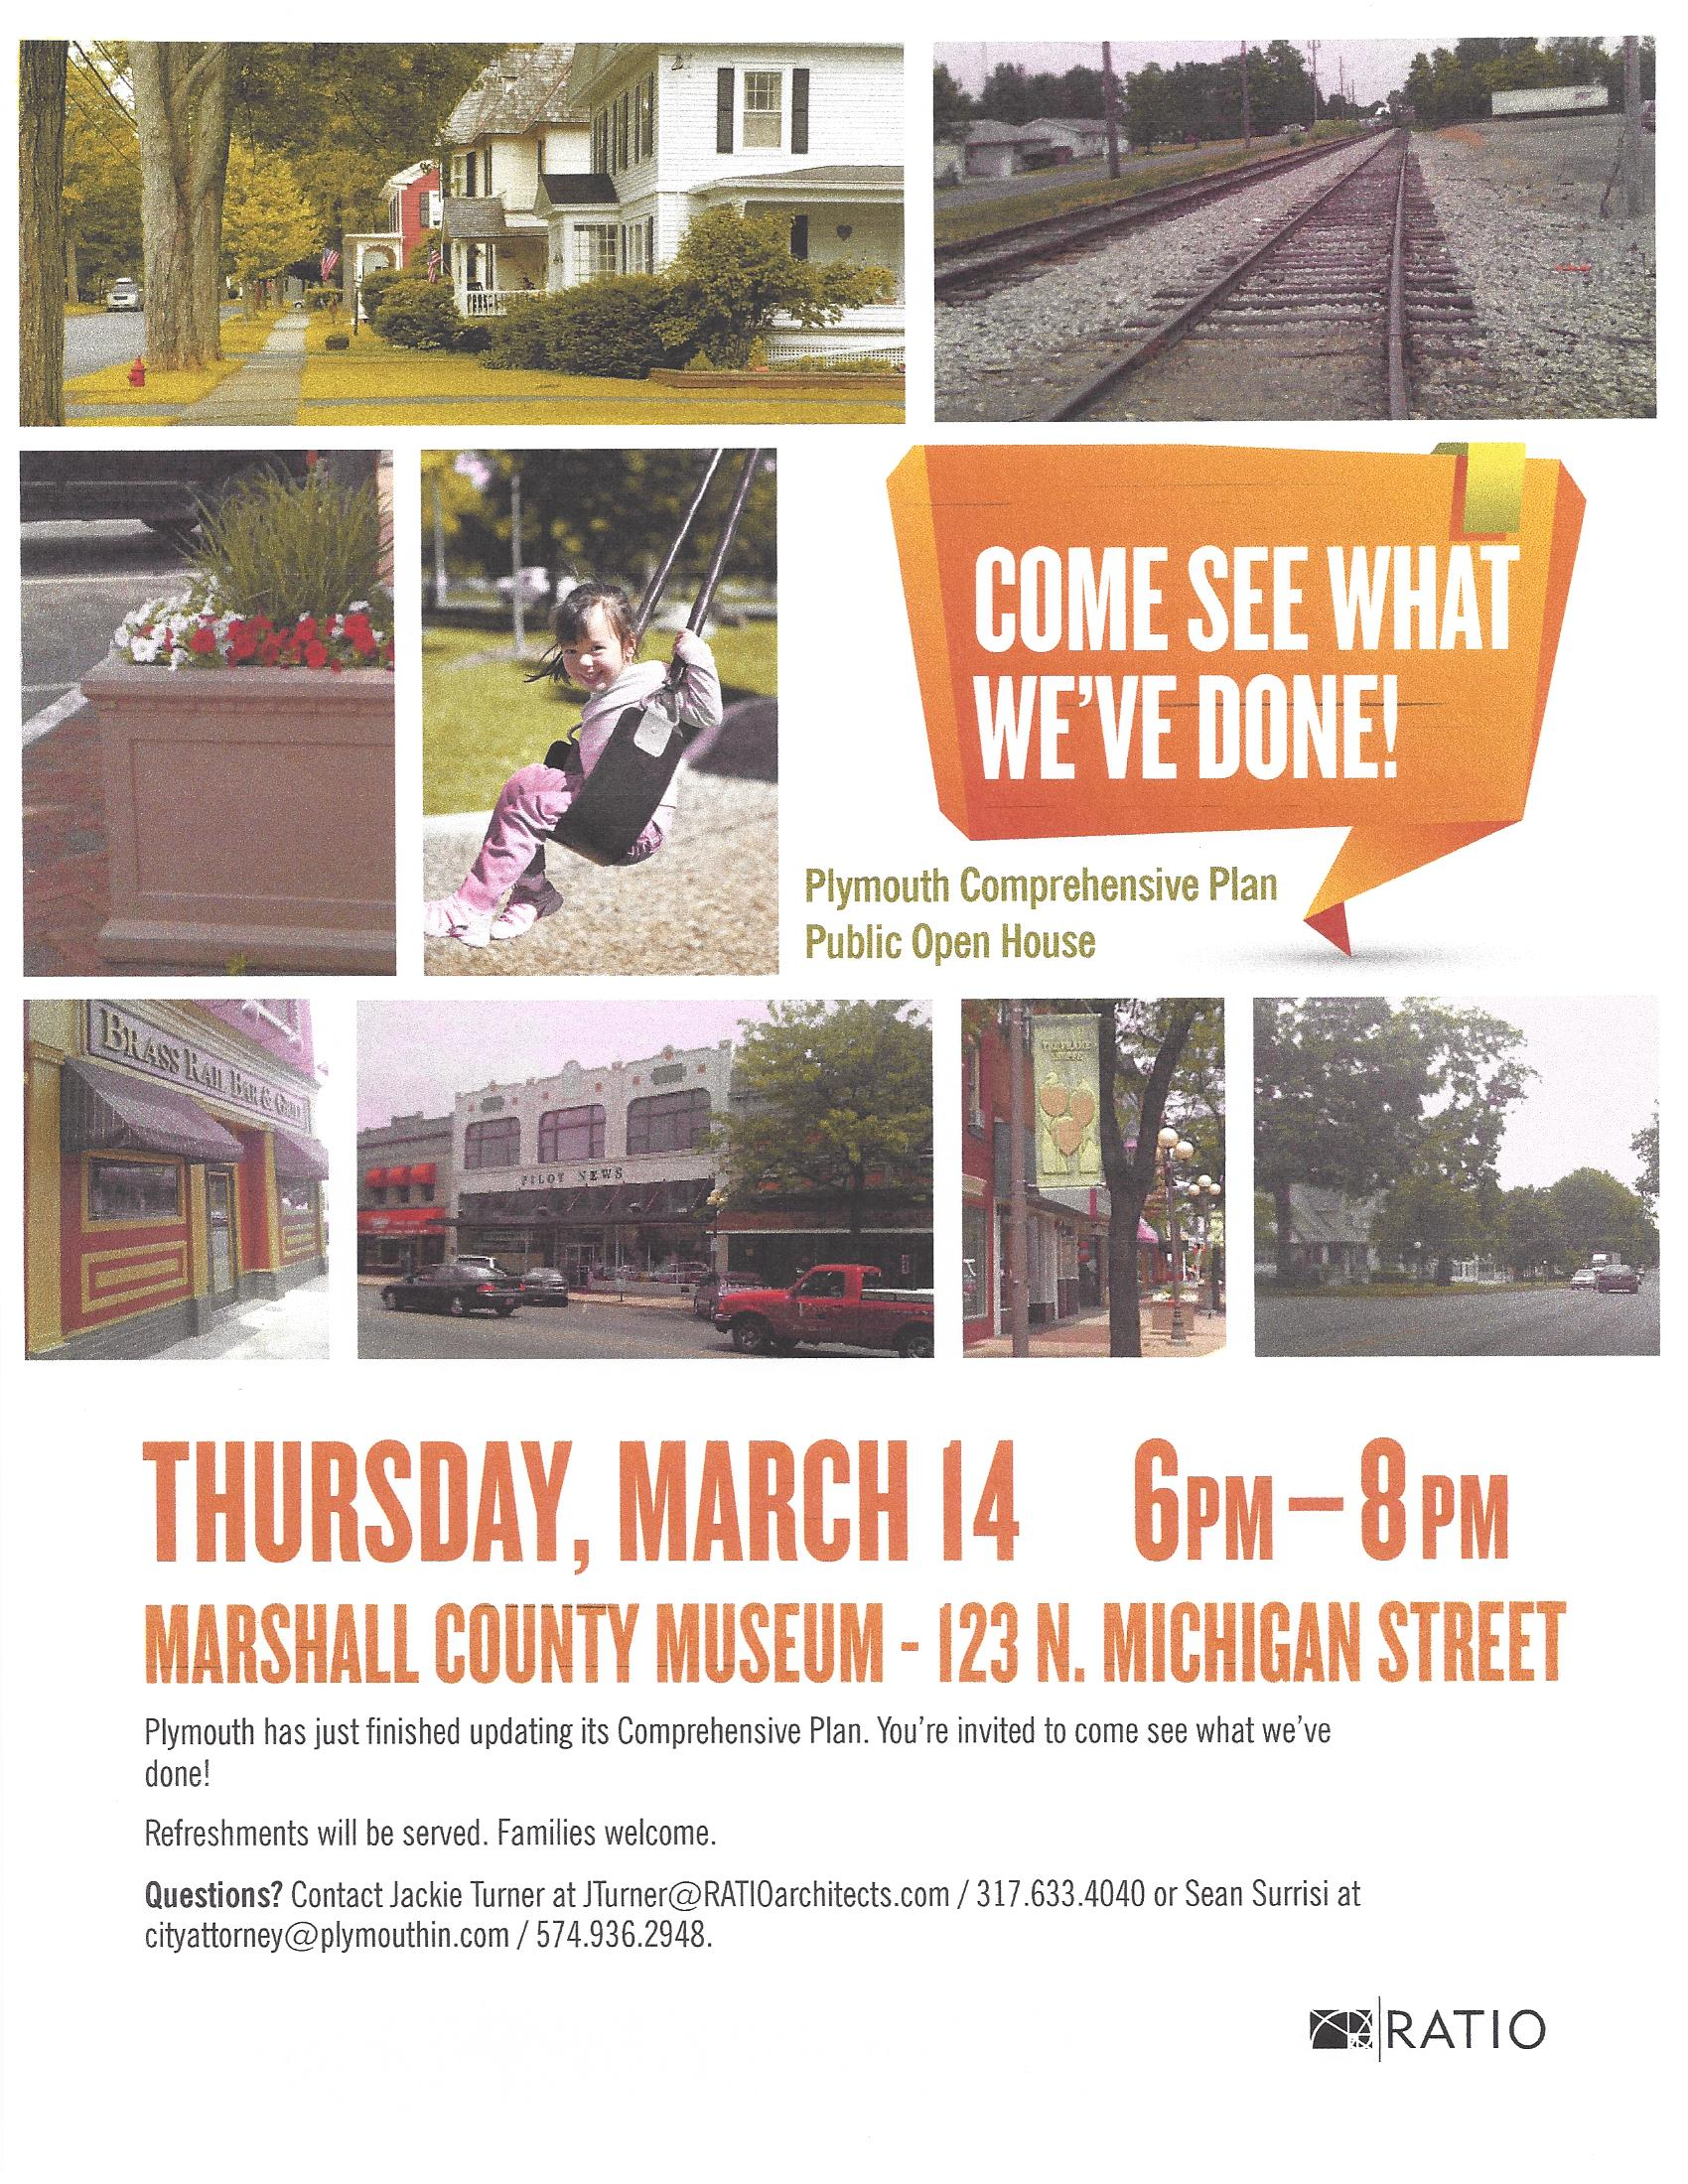 Plymouth Comp Plan Open House Flyer 3-14-13